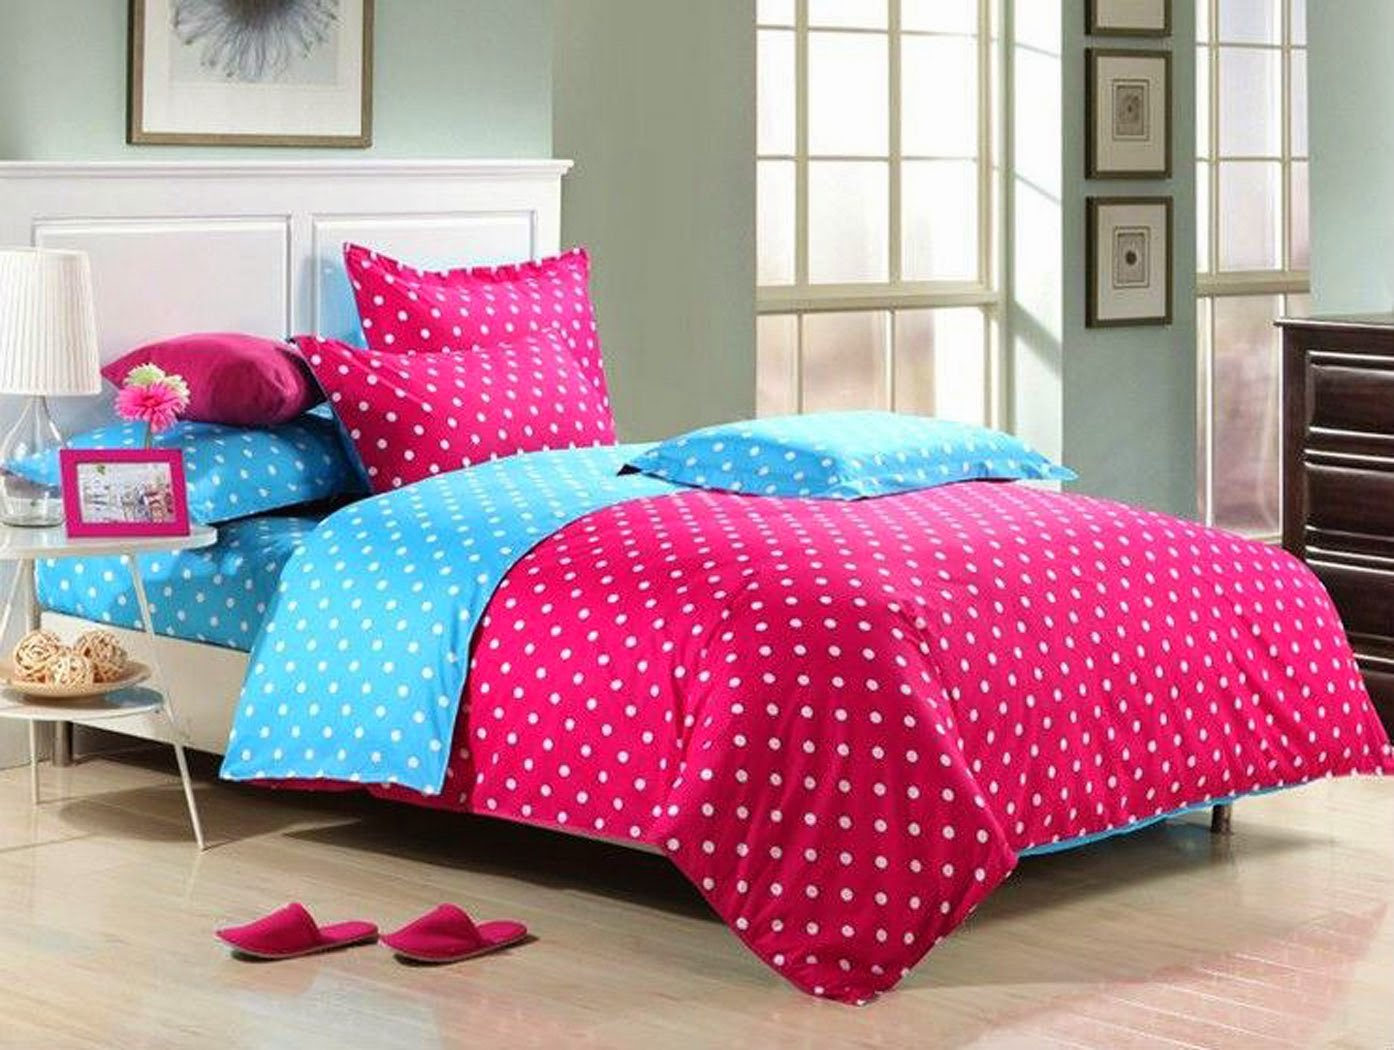 Bedroom decor ideas and designs top ten polka dot bedding for Polka dot bedroom designs